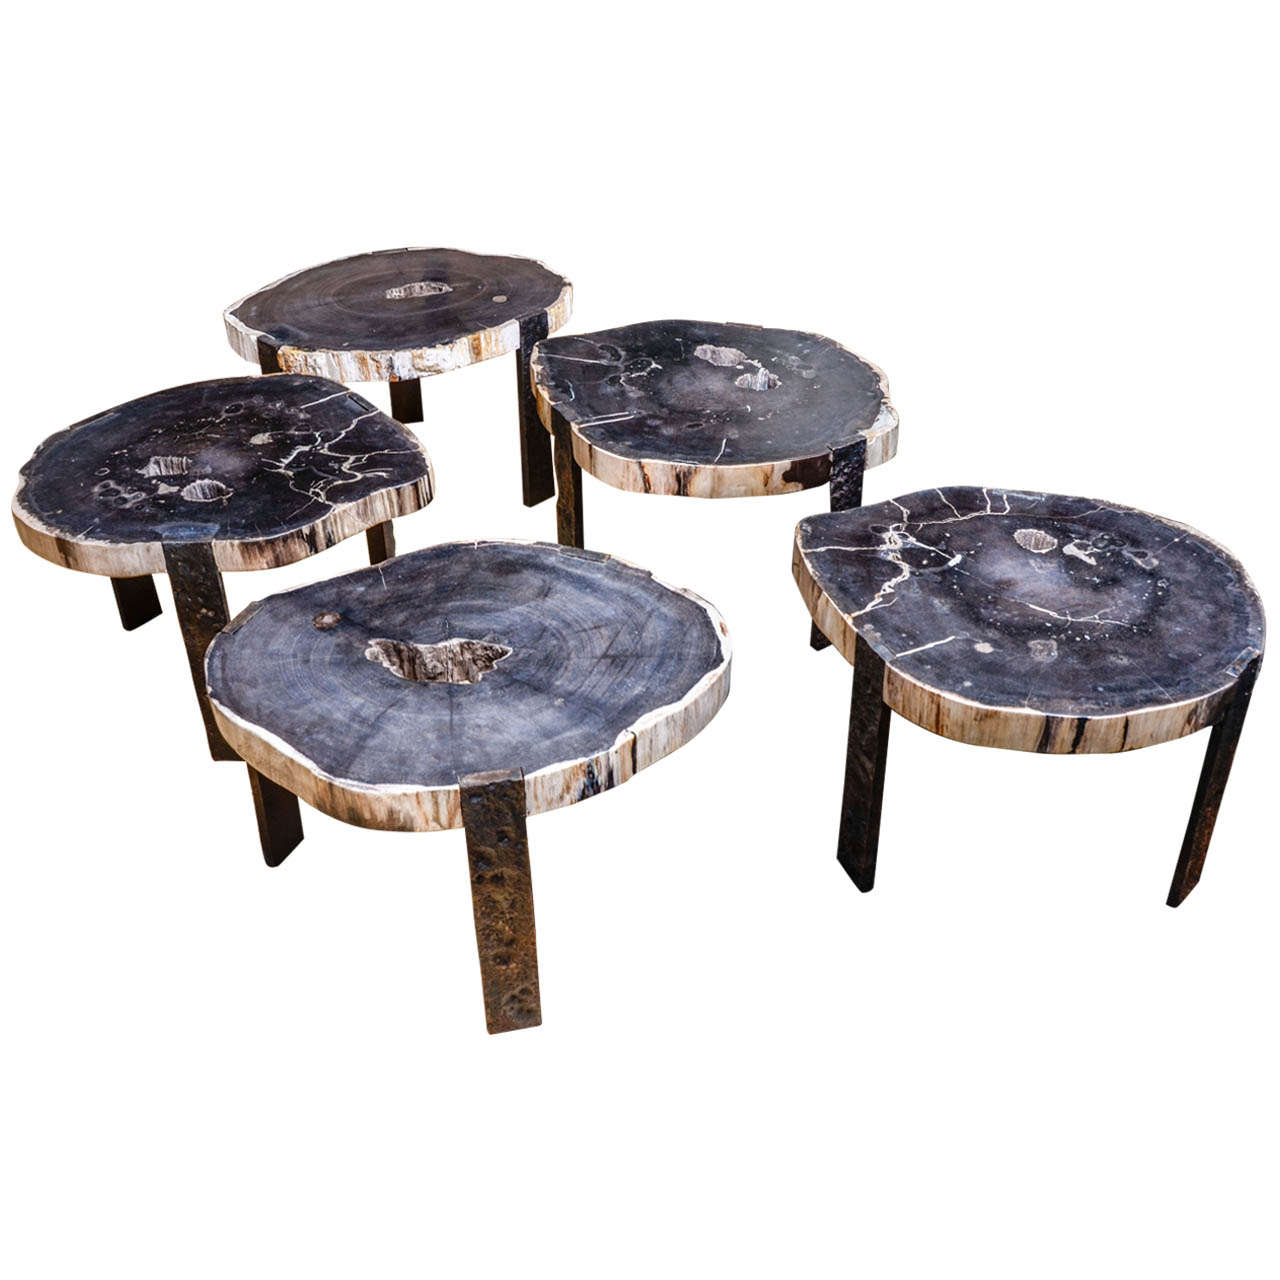 Oval Coffee Tables With Petrified Wood Top And Tripod Iron Base At 1stdibs